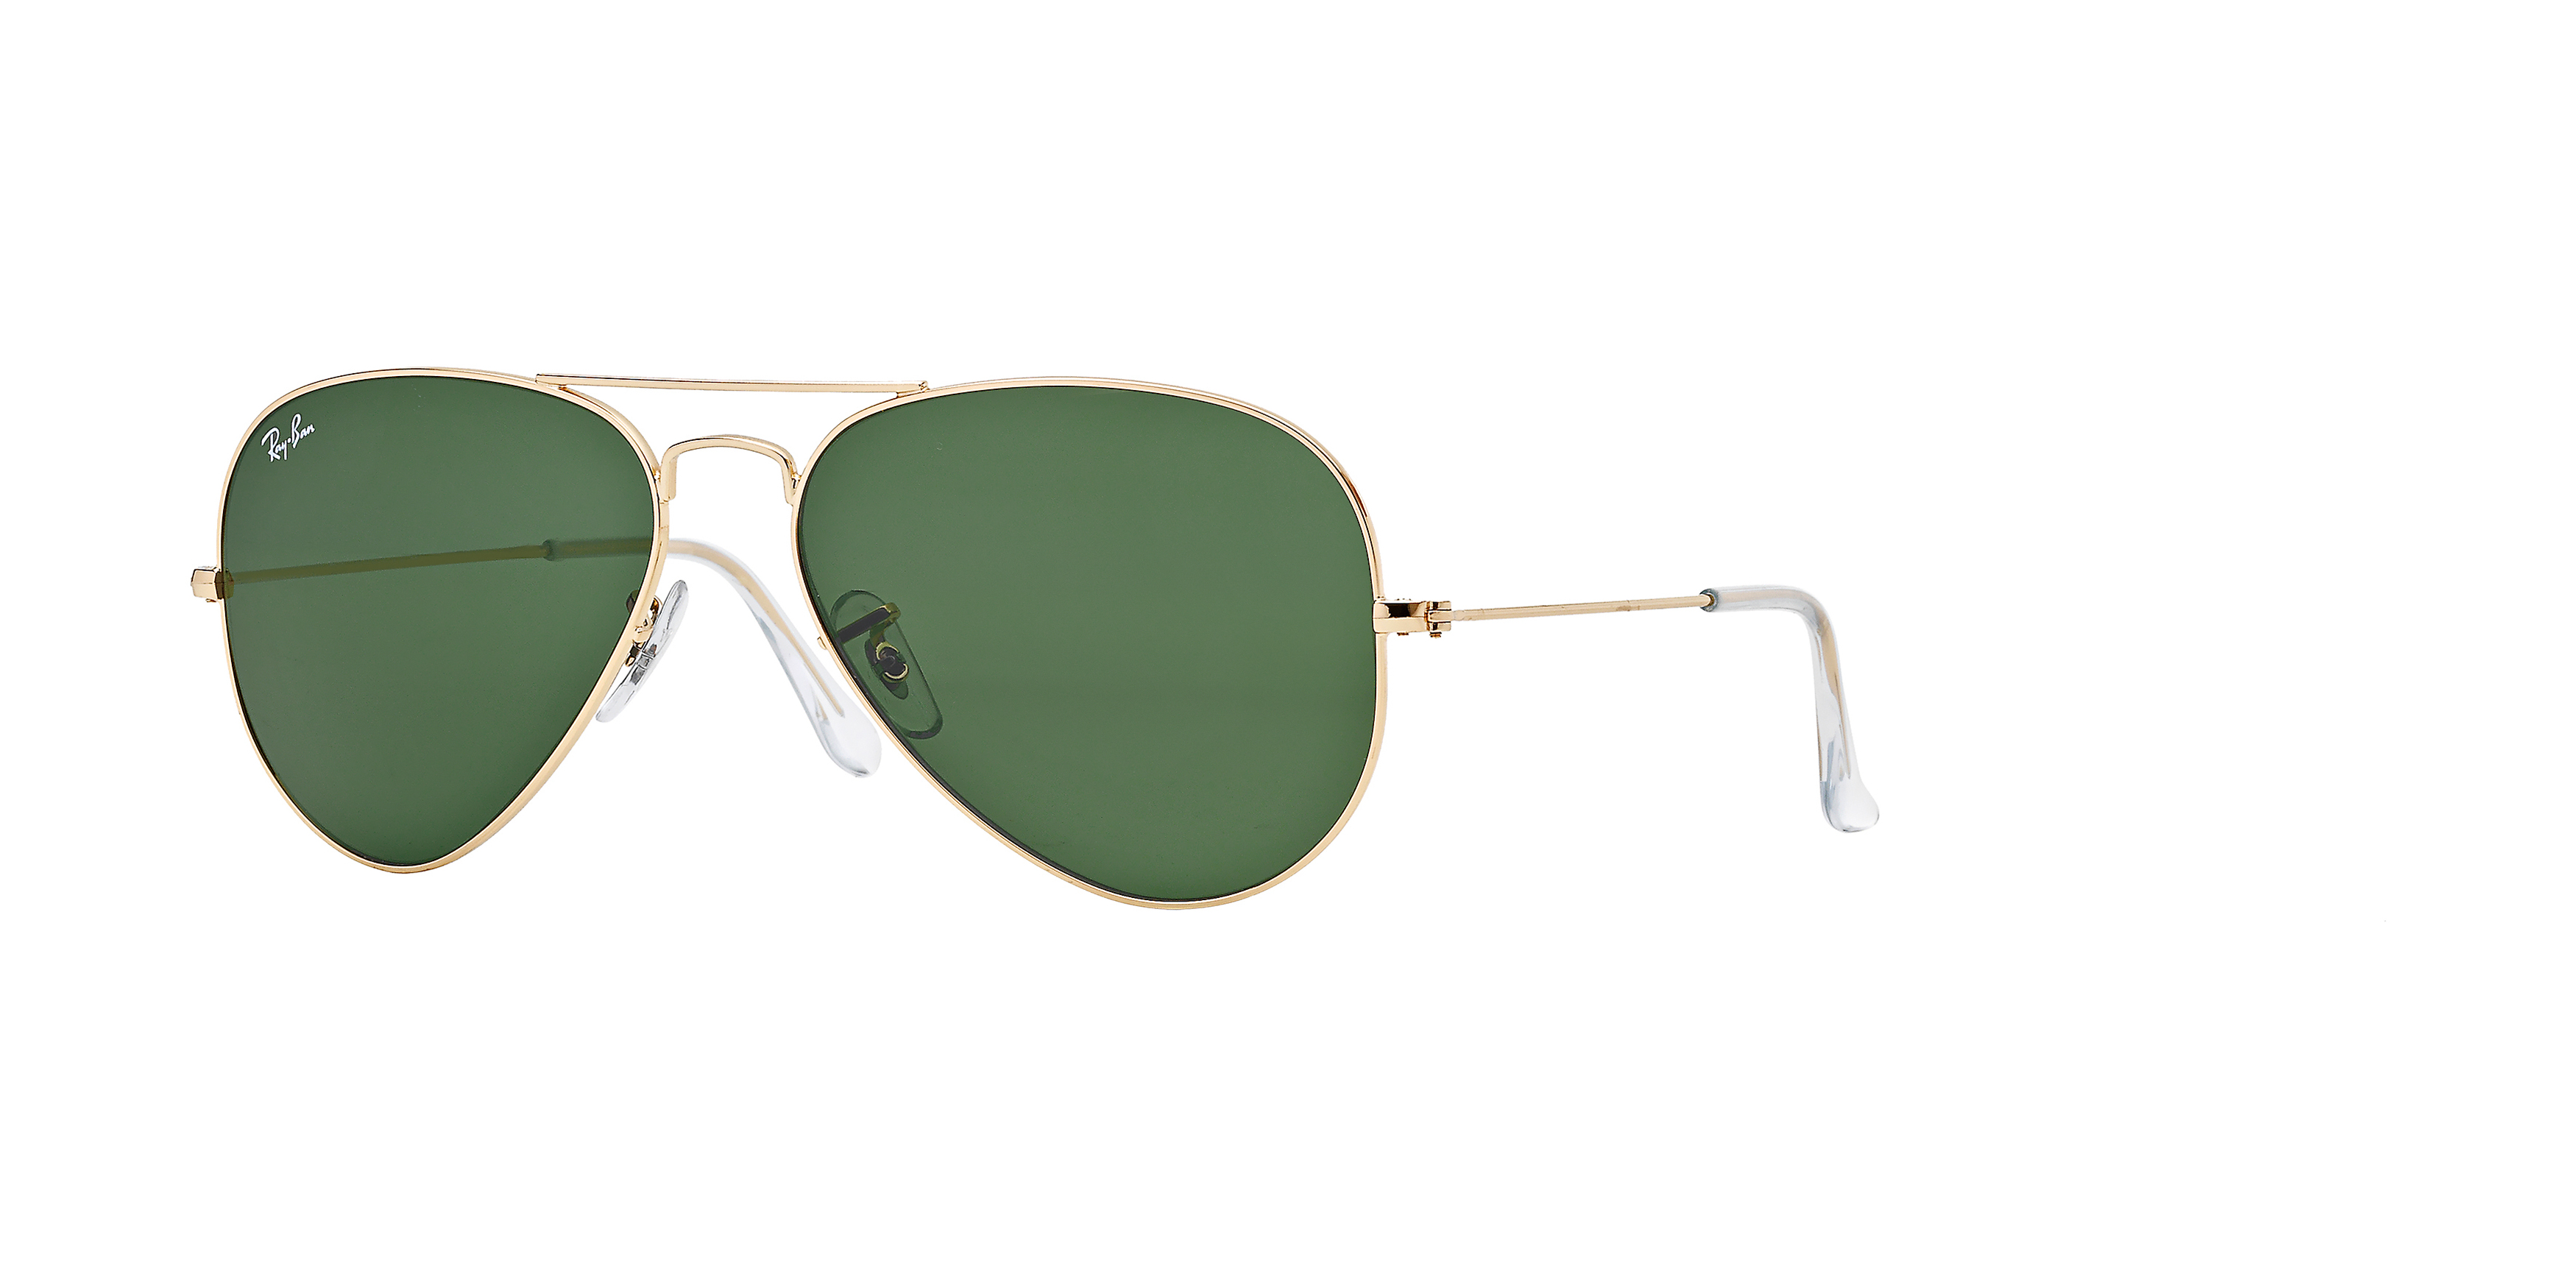 3182262cdda Ray Ban Rb3025 Aviator Sunglasses Arista Frame G 15xlt Lens ...